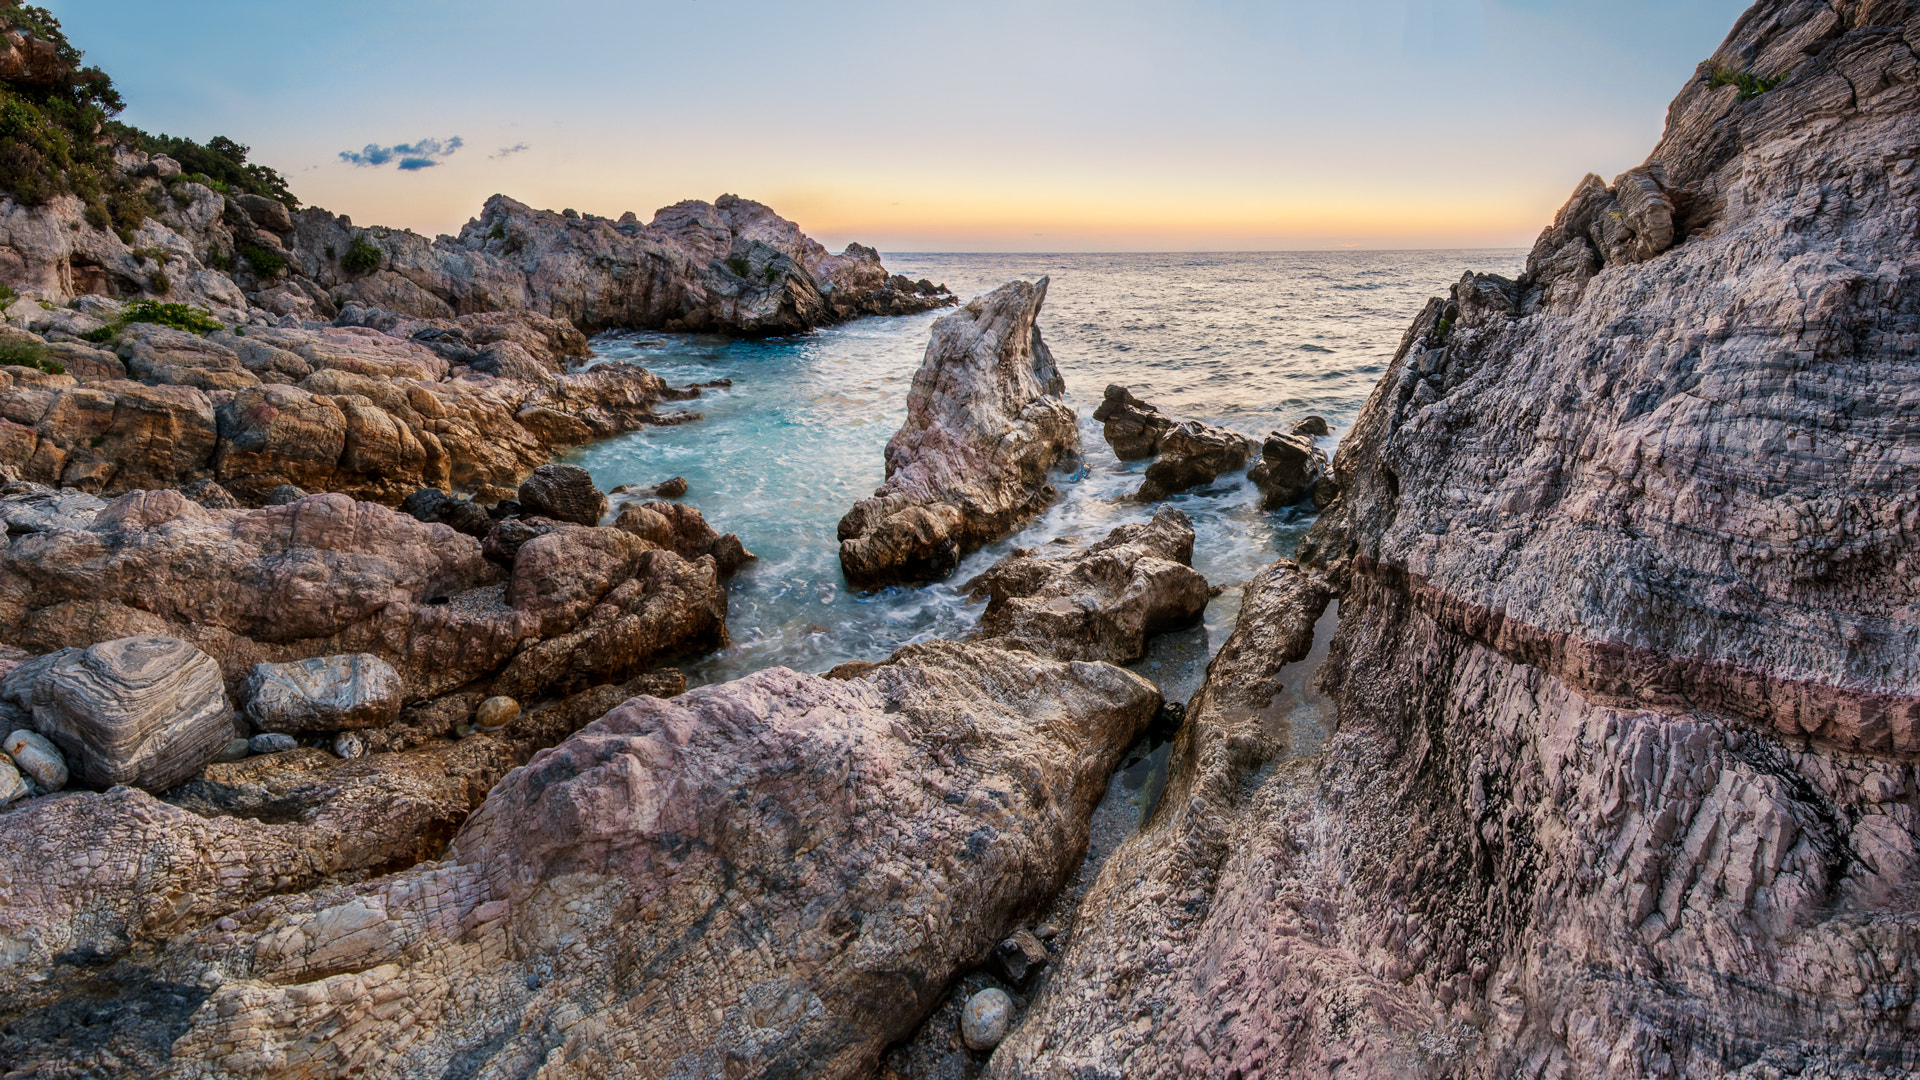 Photograph Rockscape in Greece, mt Pelion by George Kopanas on 500px